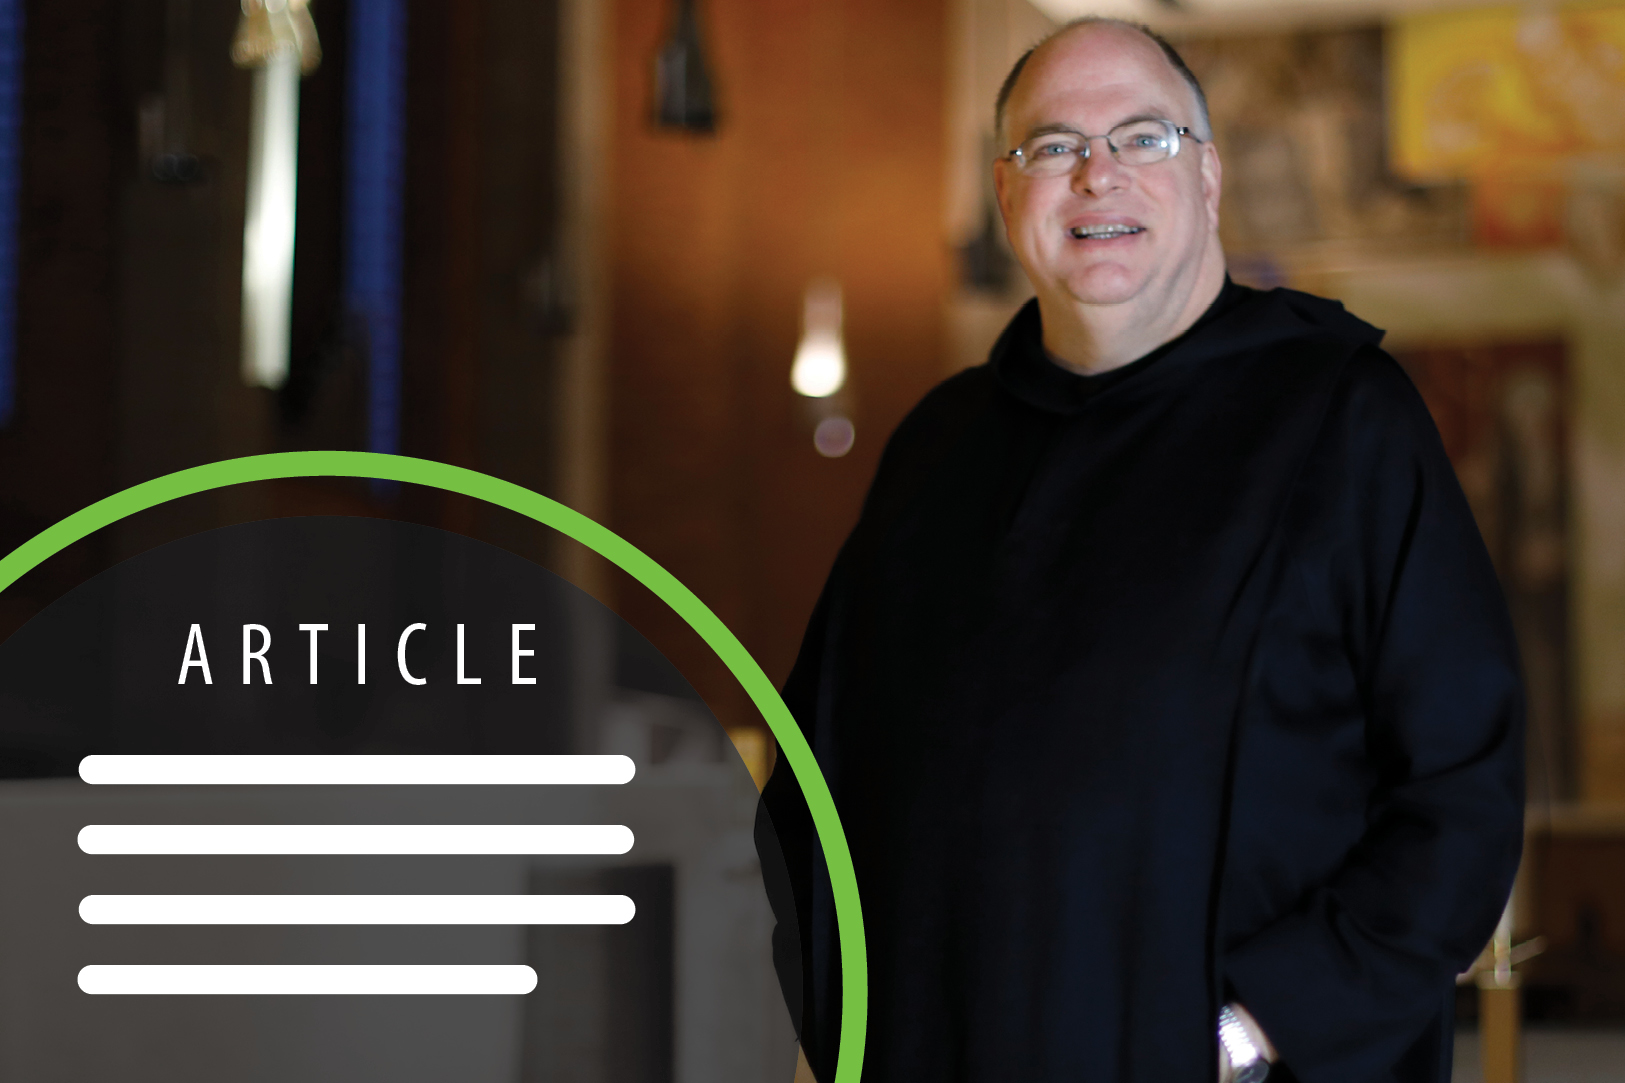 Article by Fr. Meinrad Miller